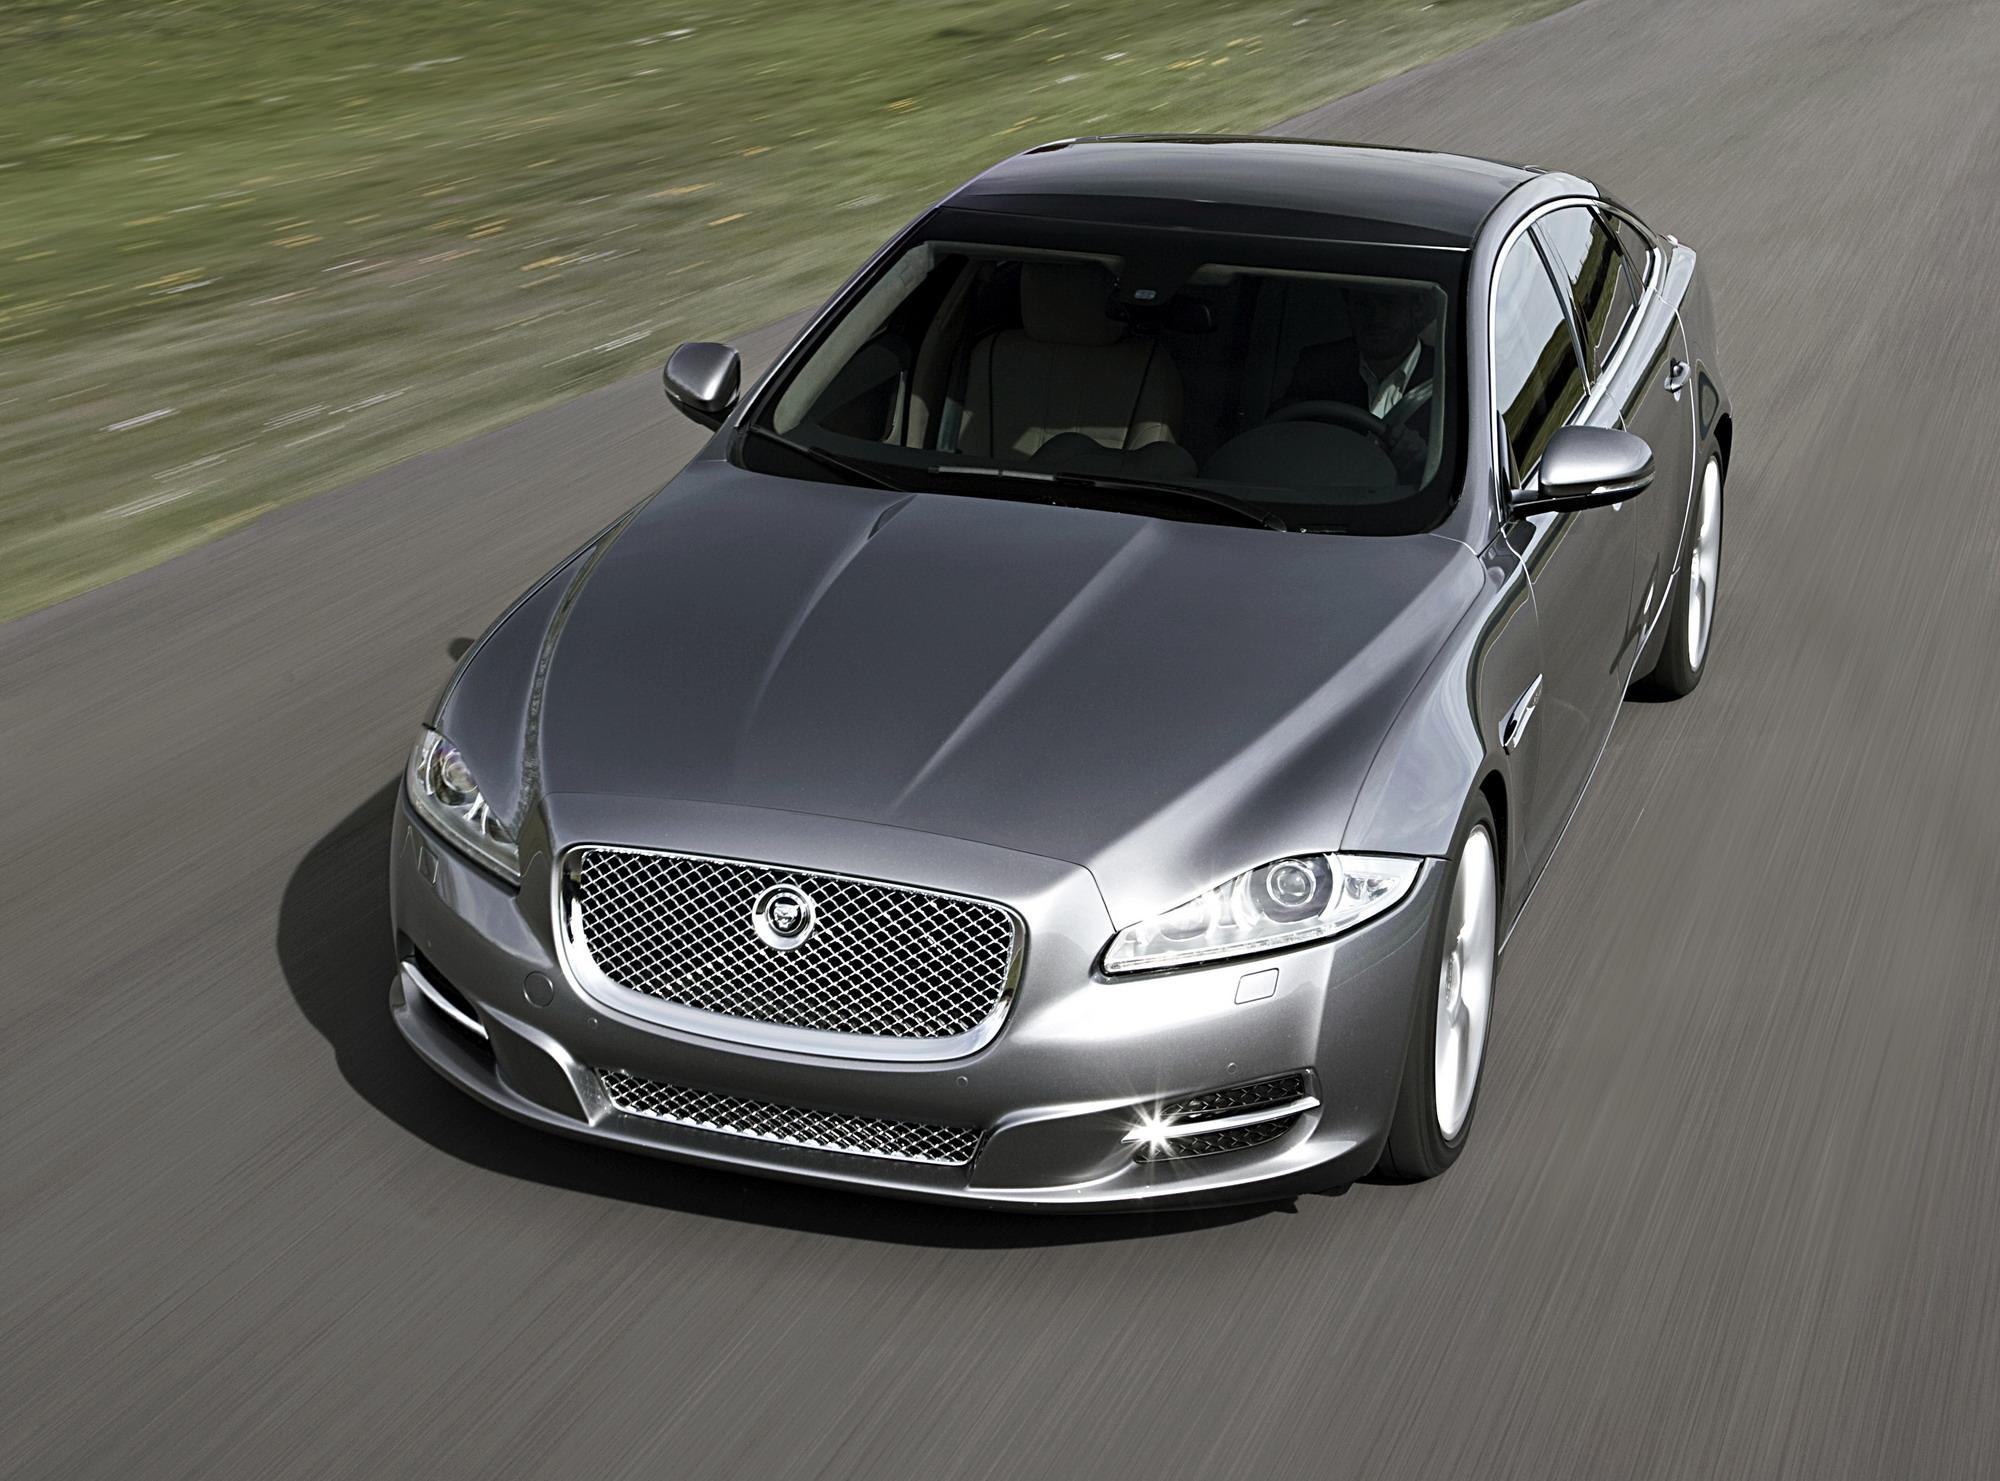 jaguar preview sneak news roadshow xj ct